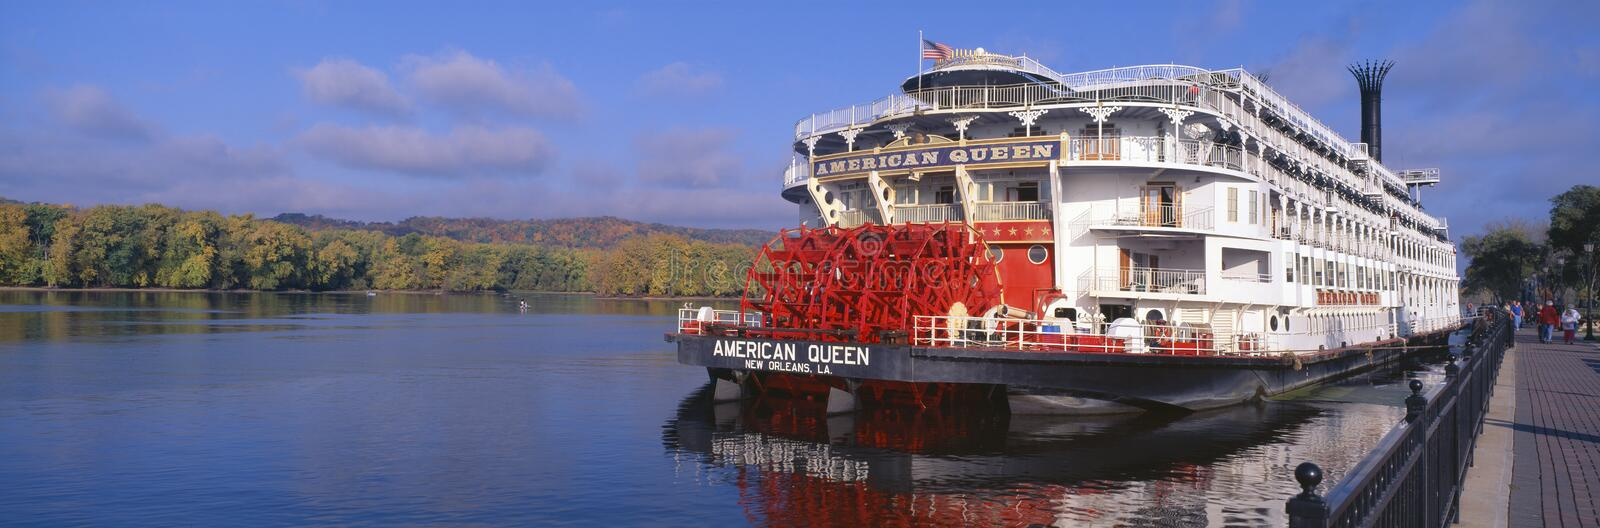 Download American Queen Ship Editorial Stock Photo - Image: 23175688